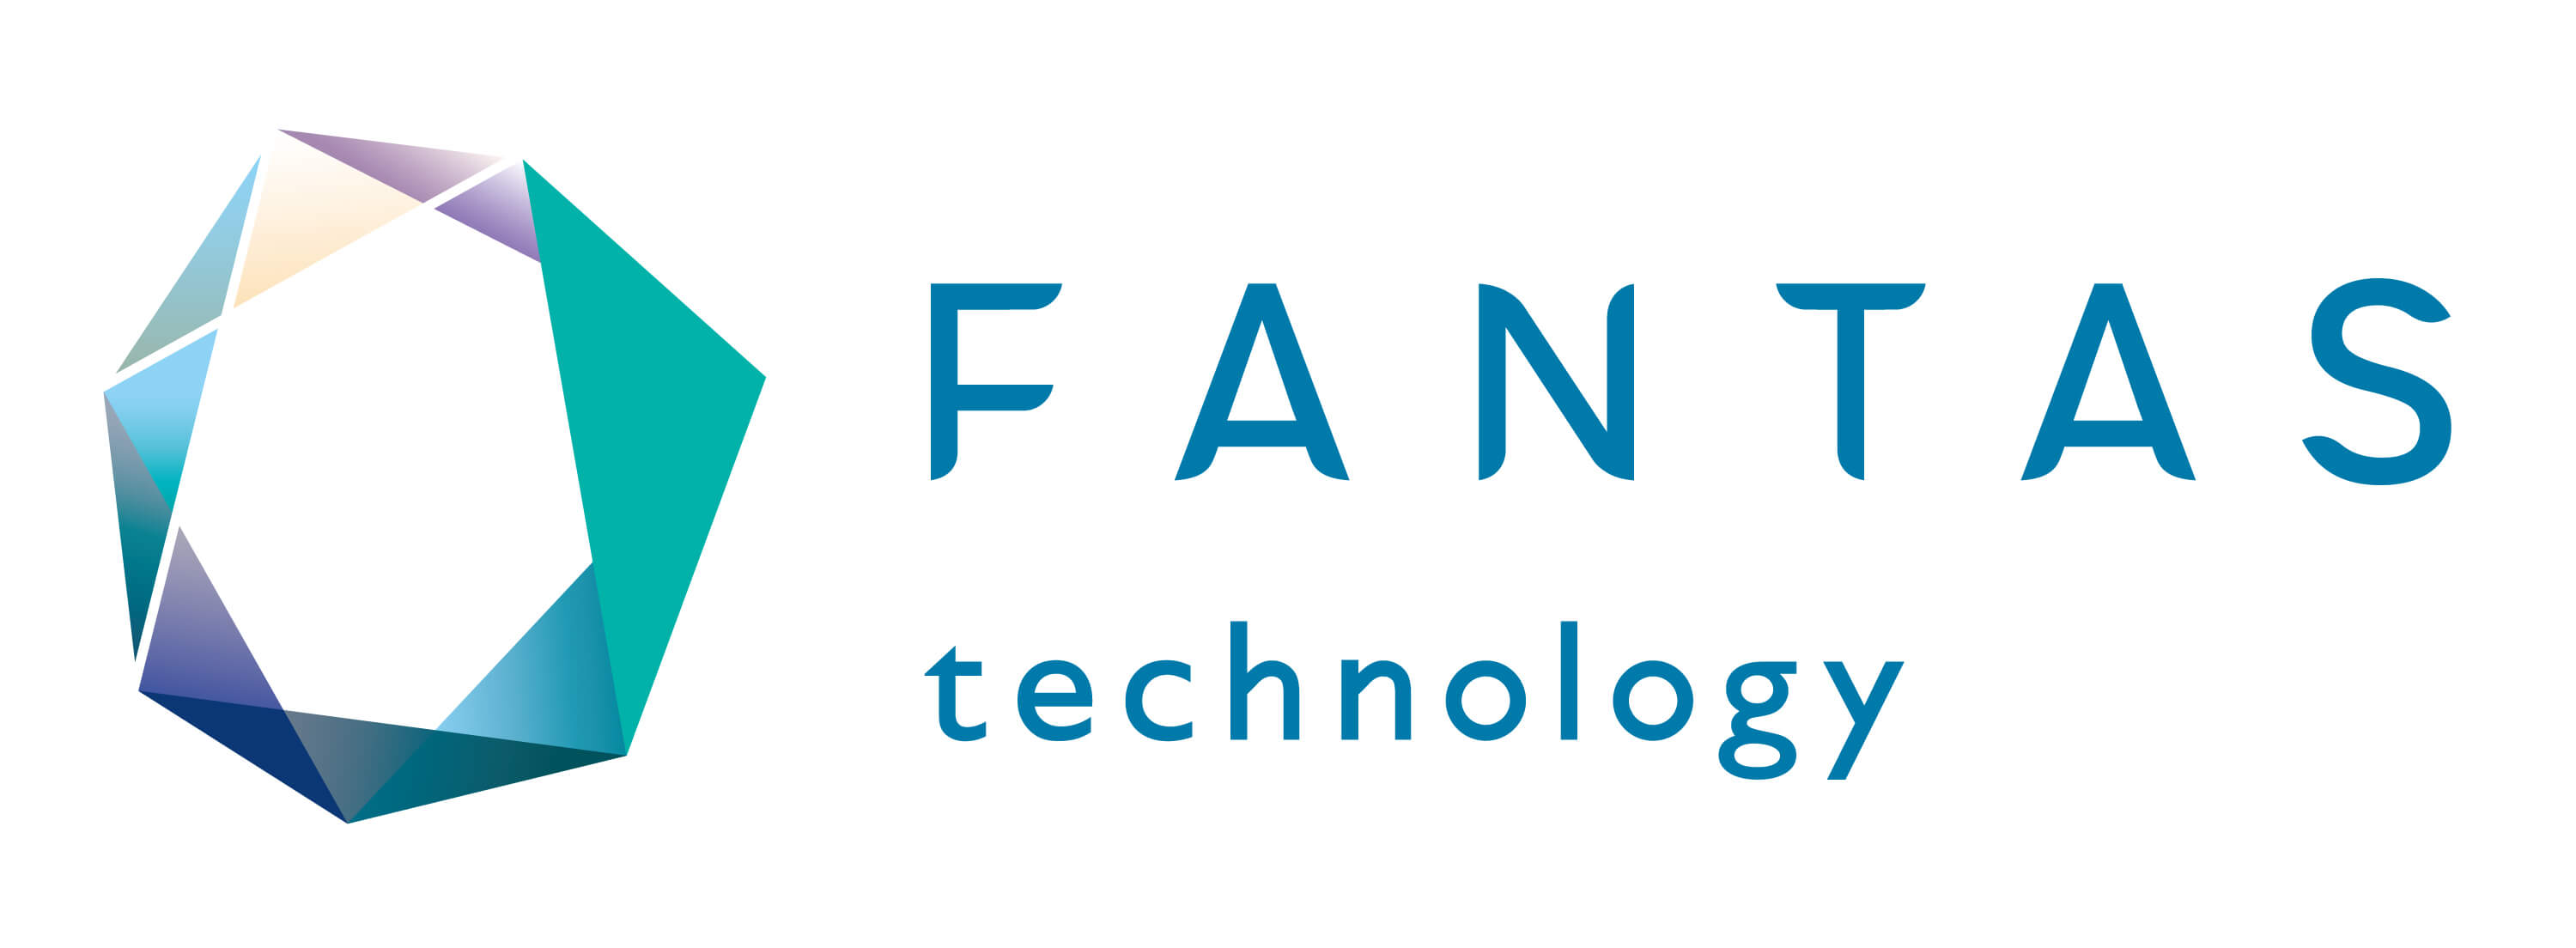 FANTAS technology 様